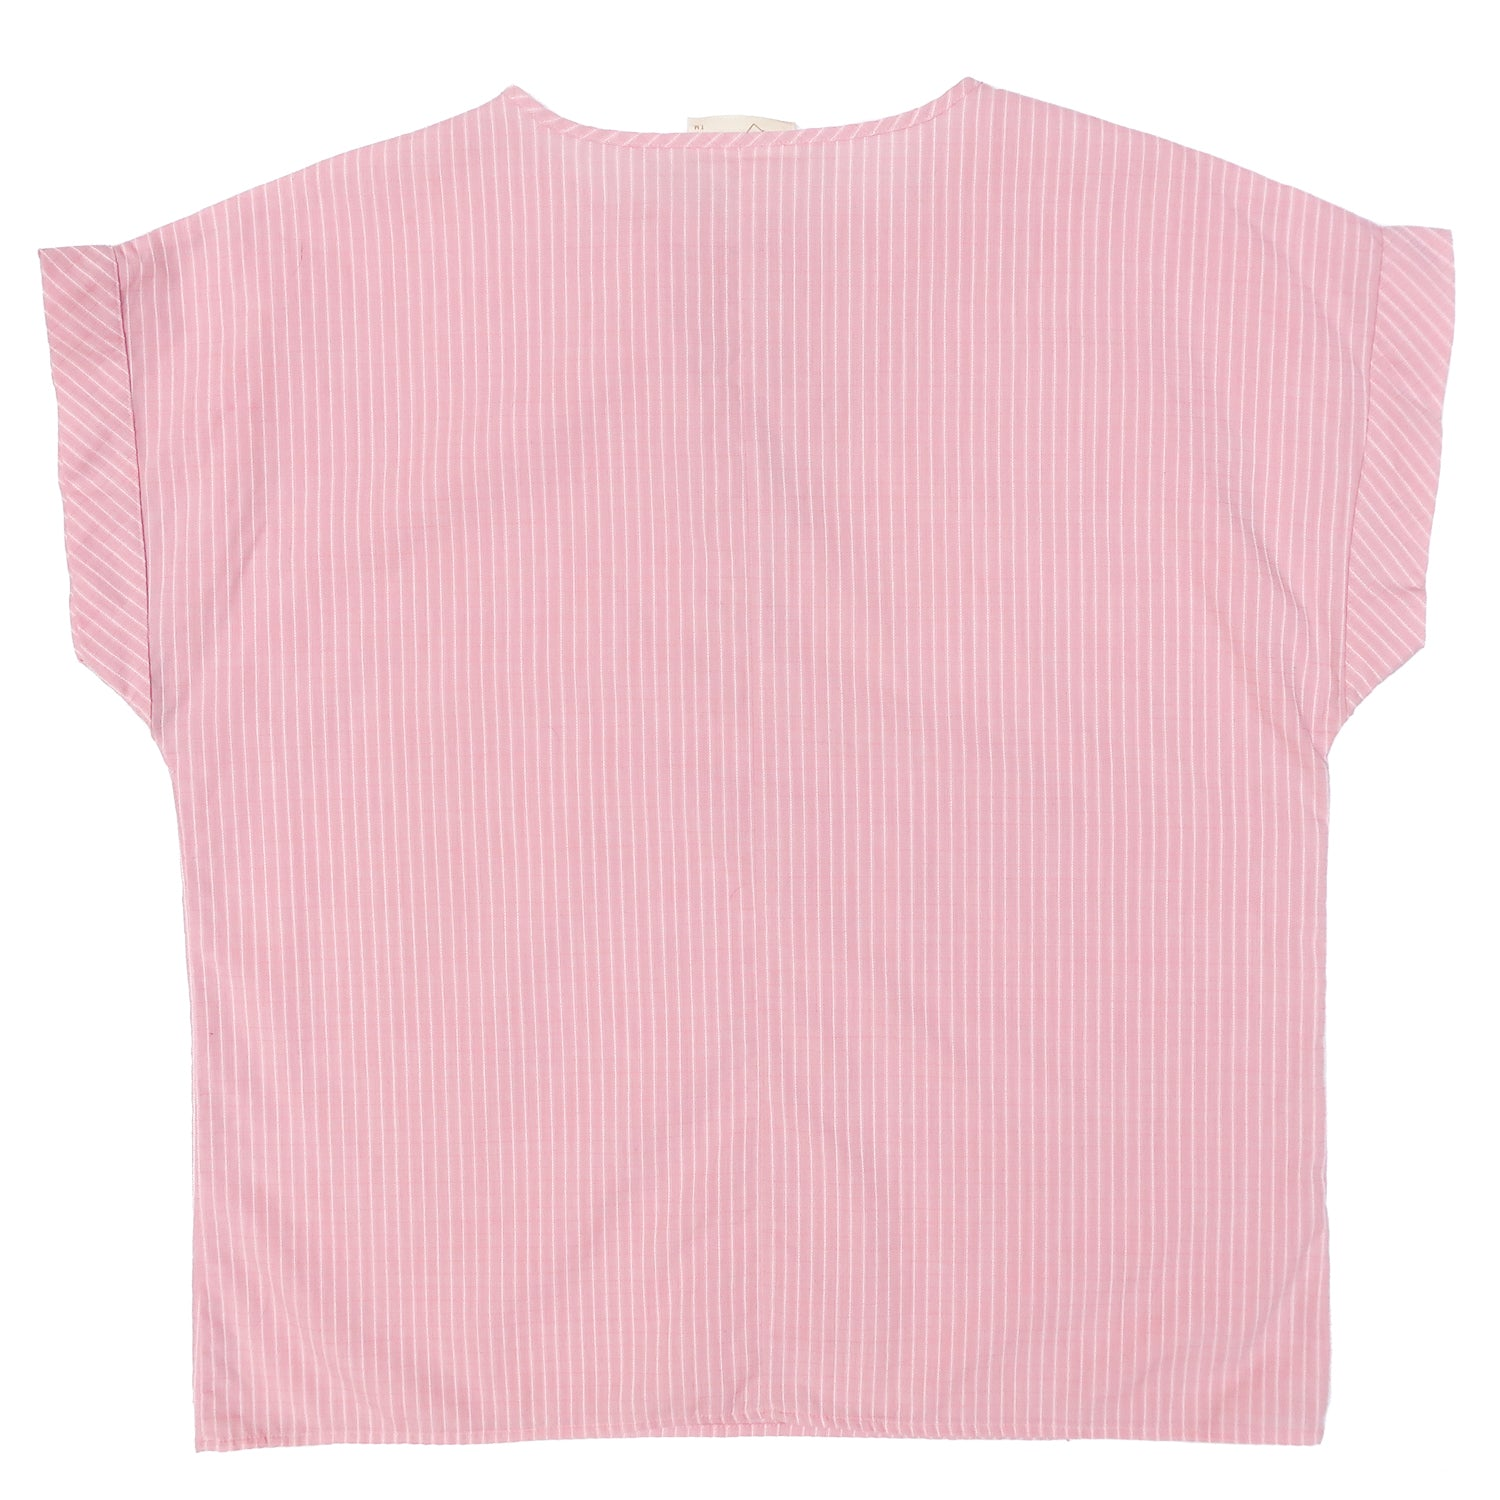 Second Room Vintage Clothing. Vintage pink and white striped grid pattern top, with short cap sleeve, crew neck with slit, and a boxy fit. Free Shipping on all orders within North America.